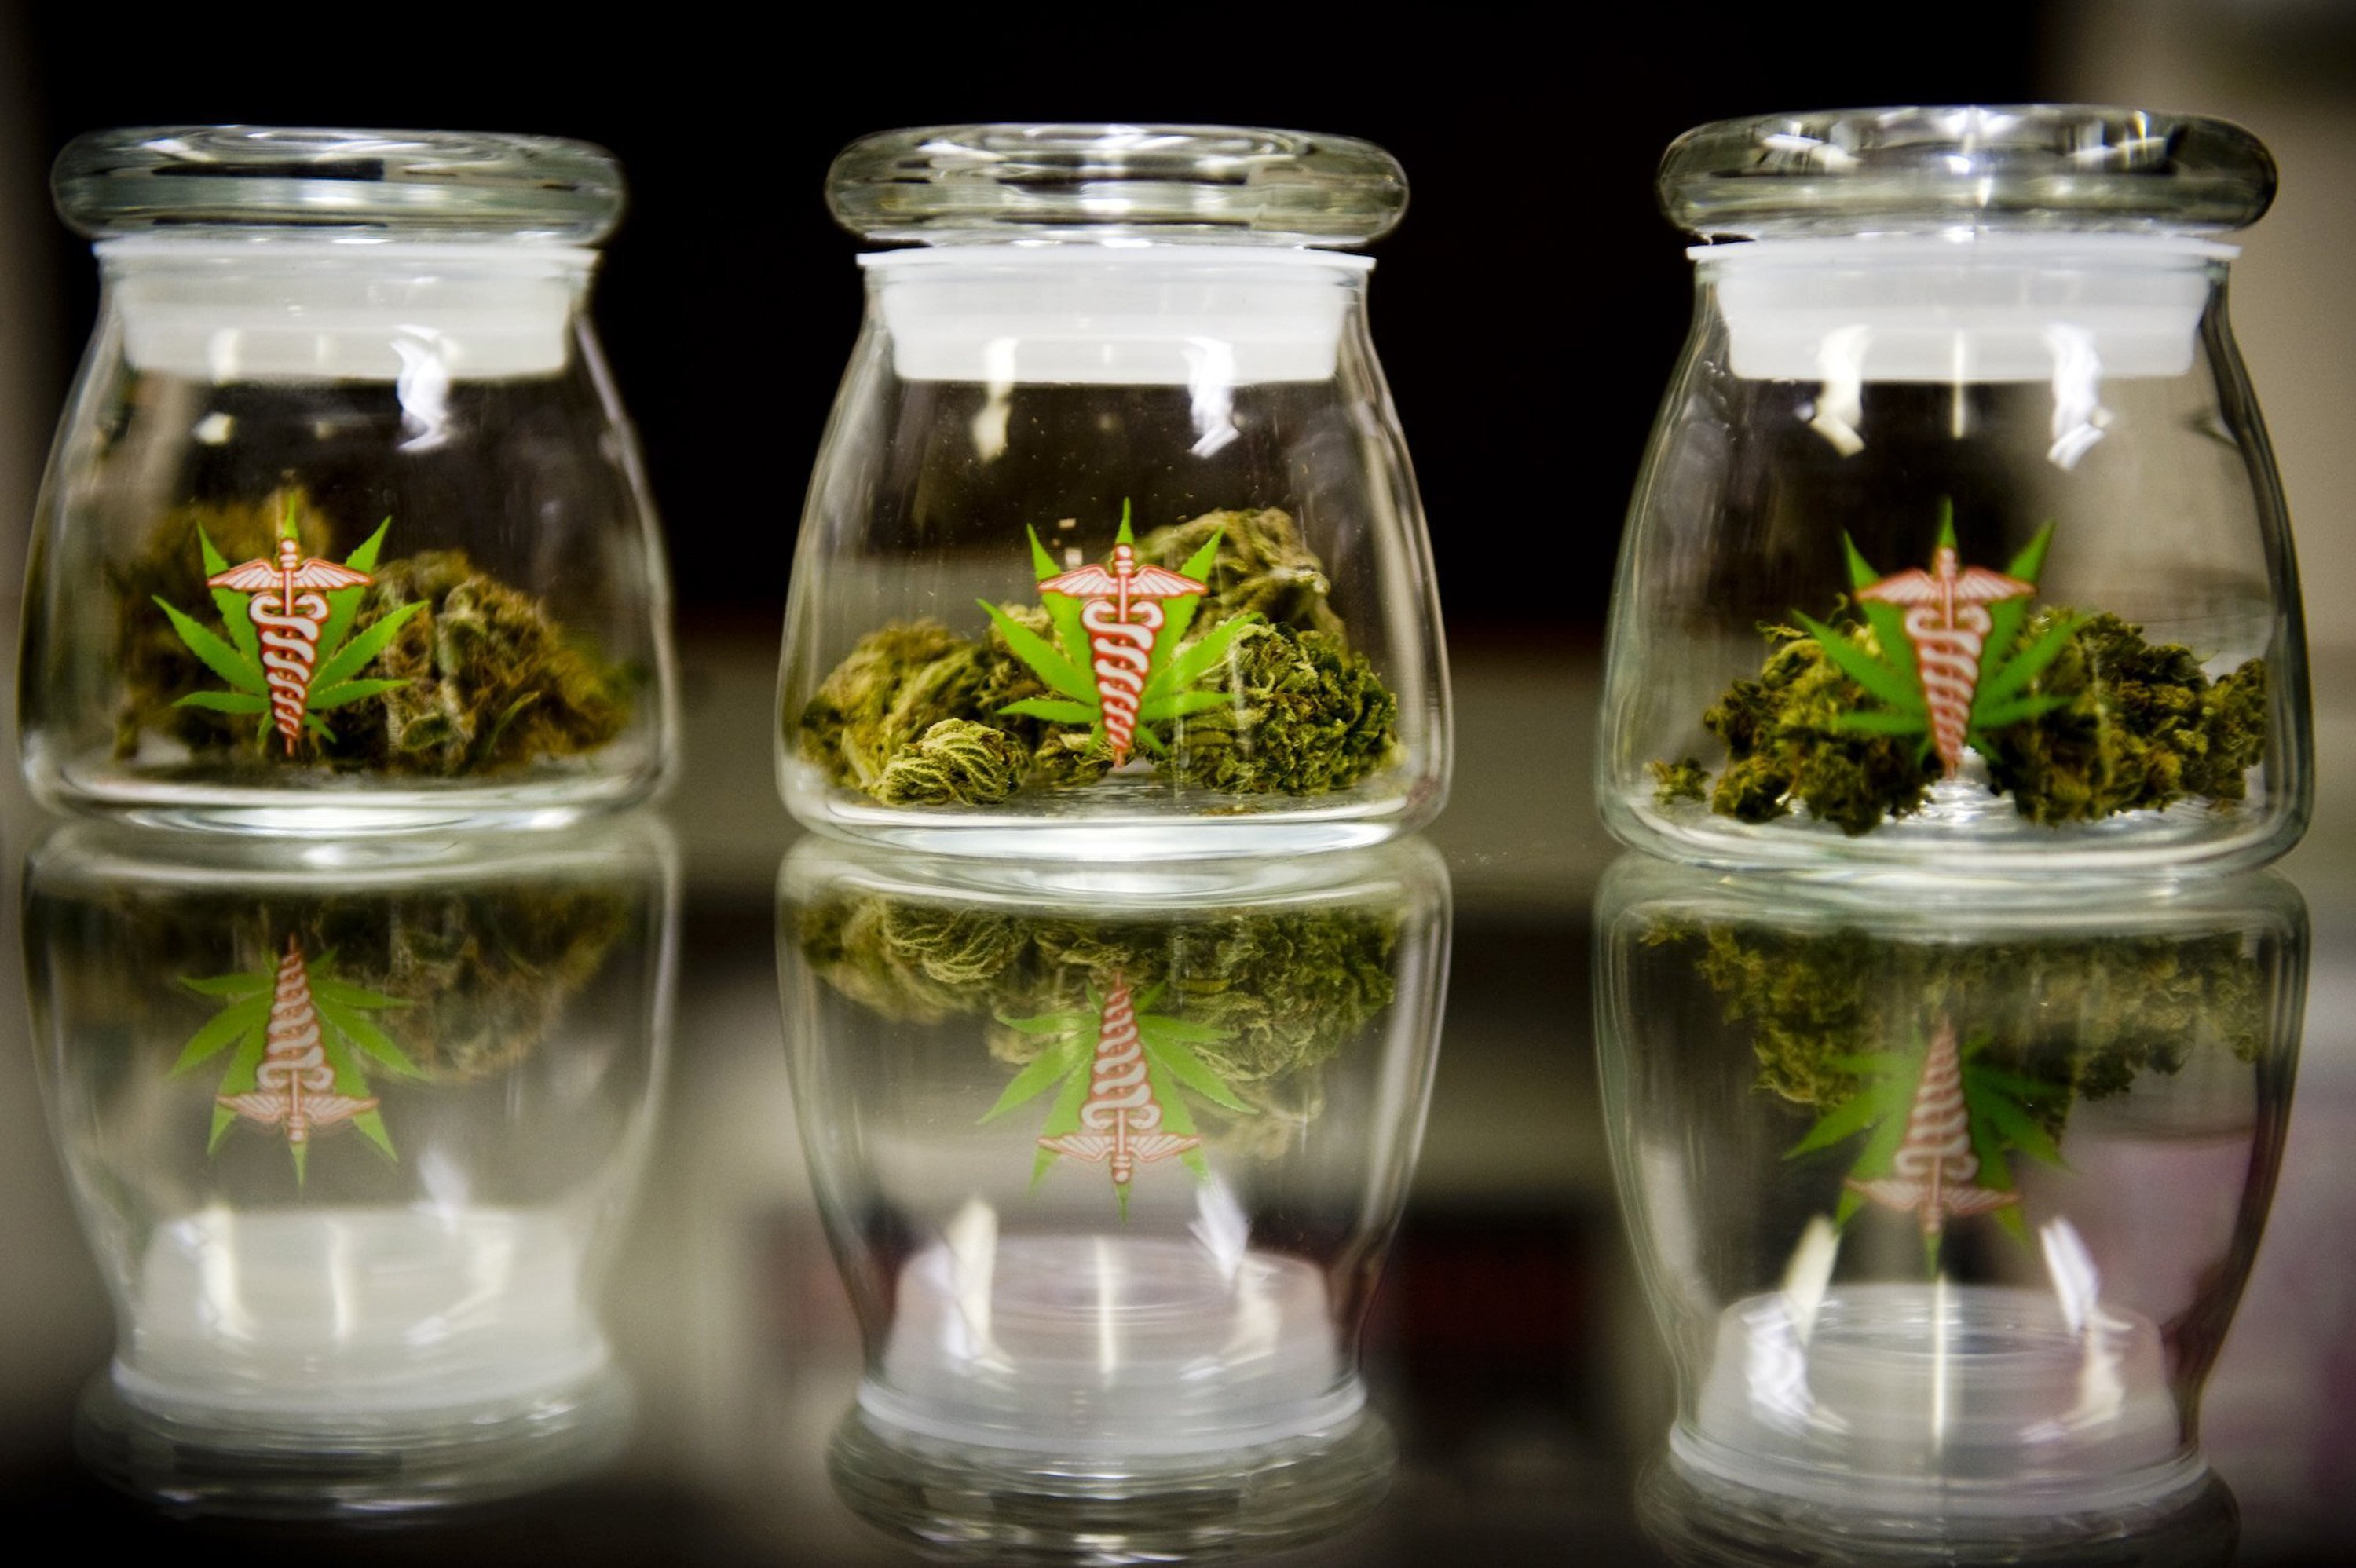 Samples of medical marijuana are displayed at Canna Care in Sacramento, Calif. The evangelical medical marijuna supplier is in a public battle with the IRS over a nearly $900,000 tax penalty. The dispensary is shown in August 2009. (Paul Kitagaki Jr./Sacramento Bee/MCT)